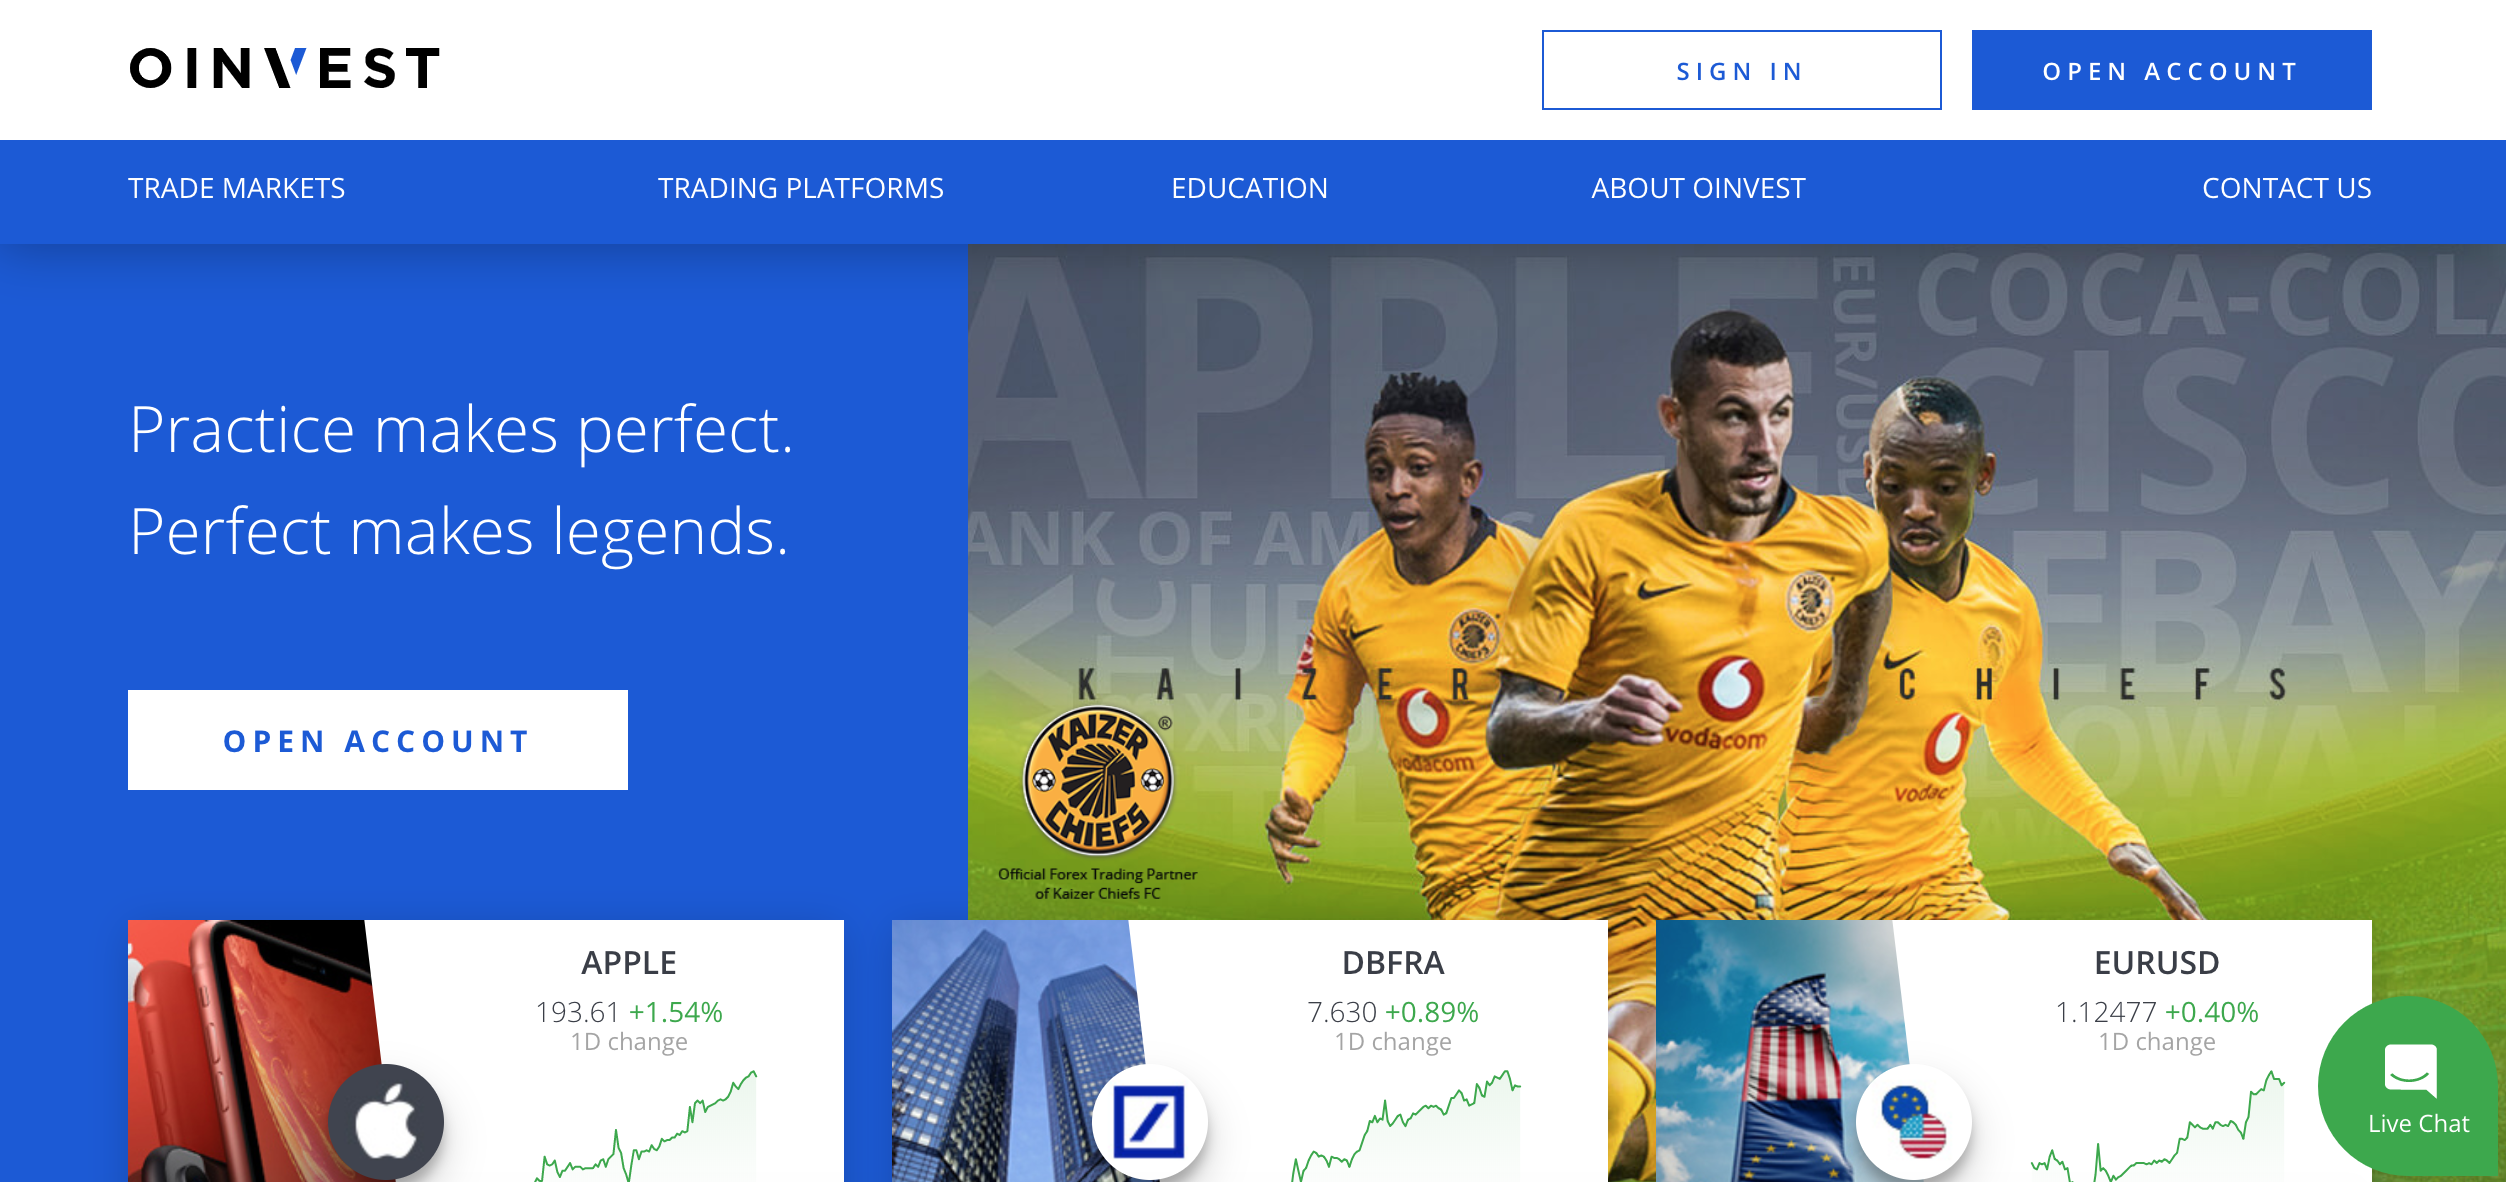 The Oinvest Forex broker: what do they offer?